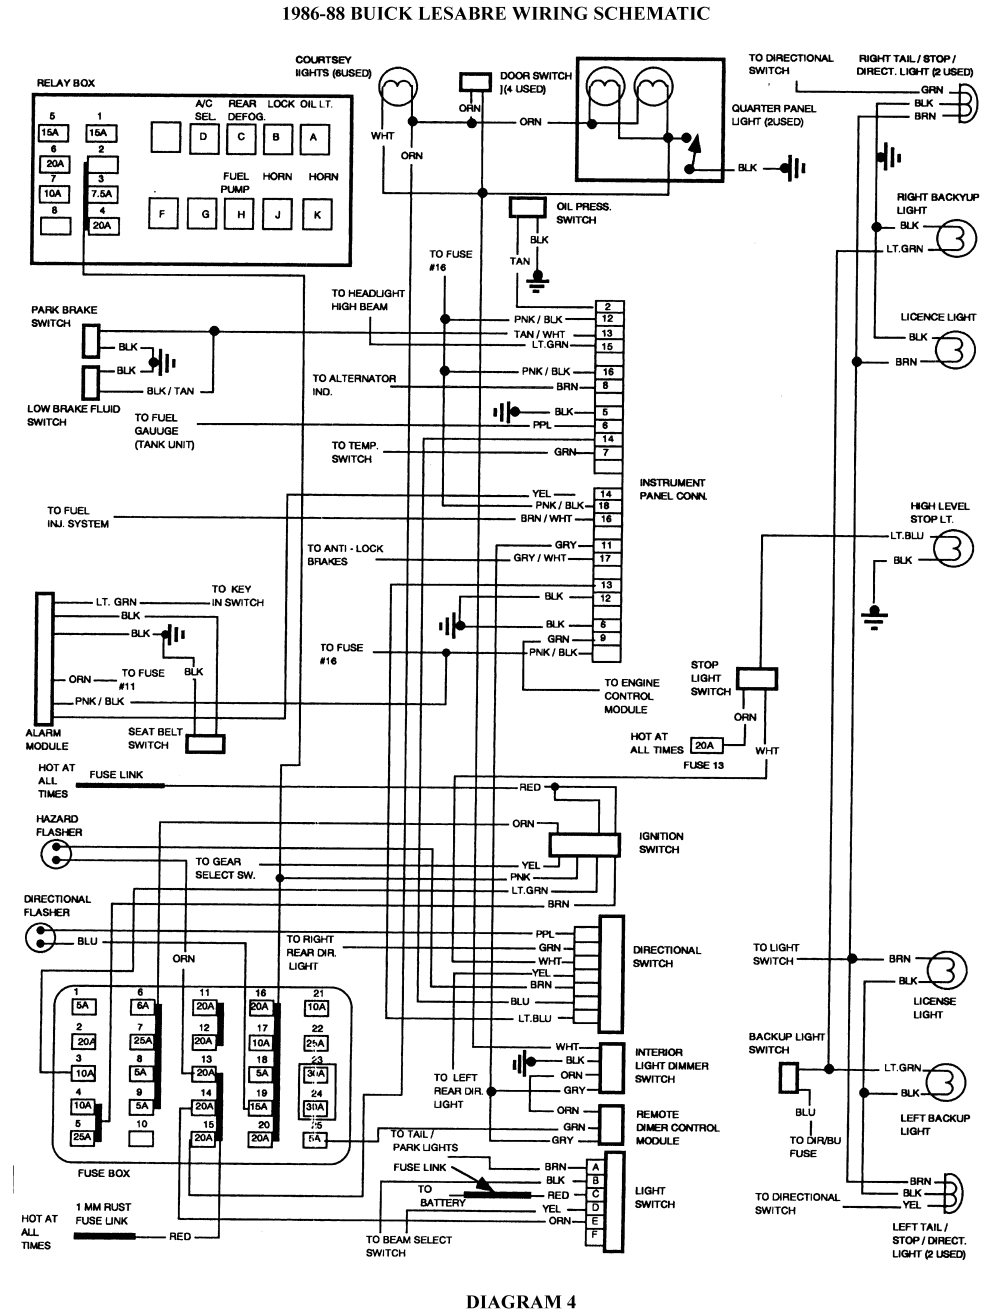 6 1986 88 buick lesabre wiring schematic